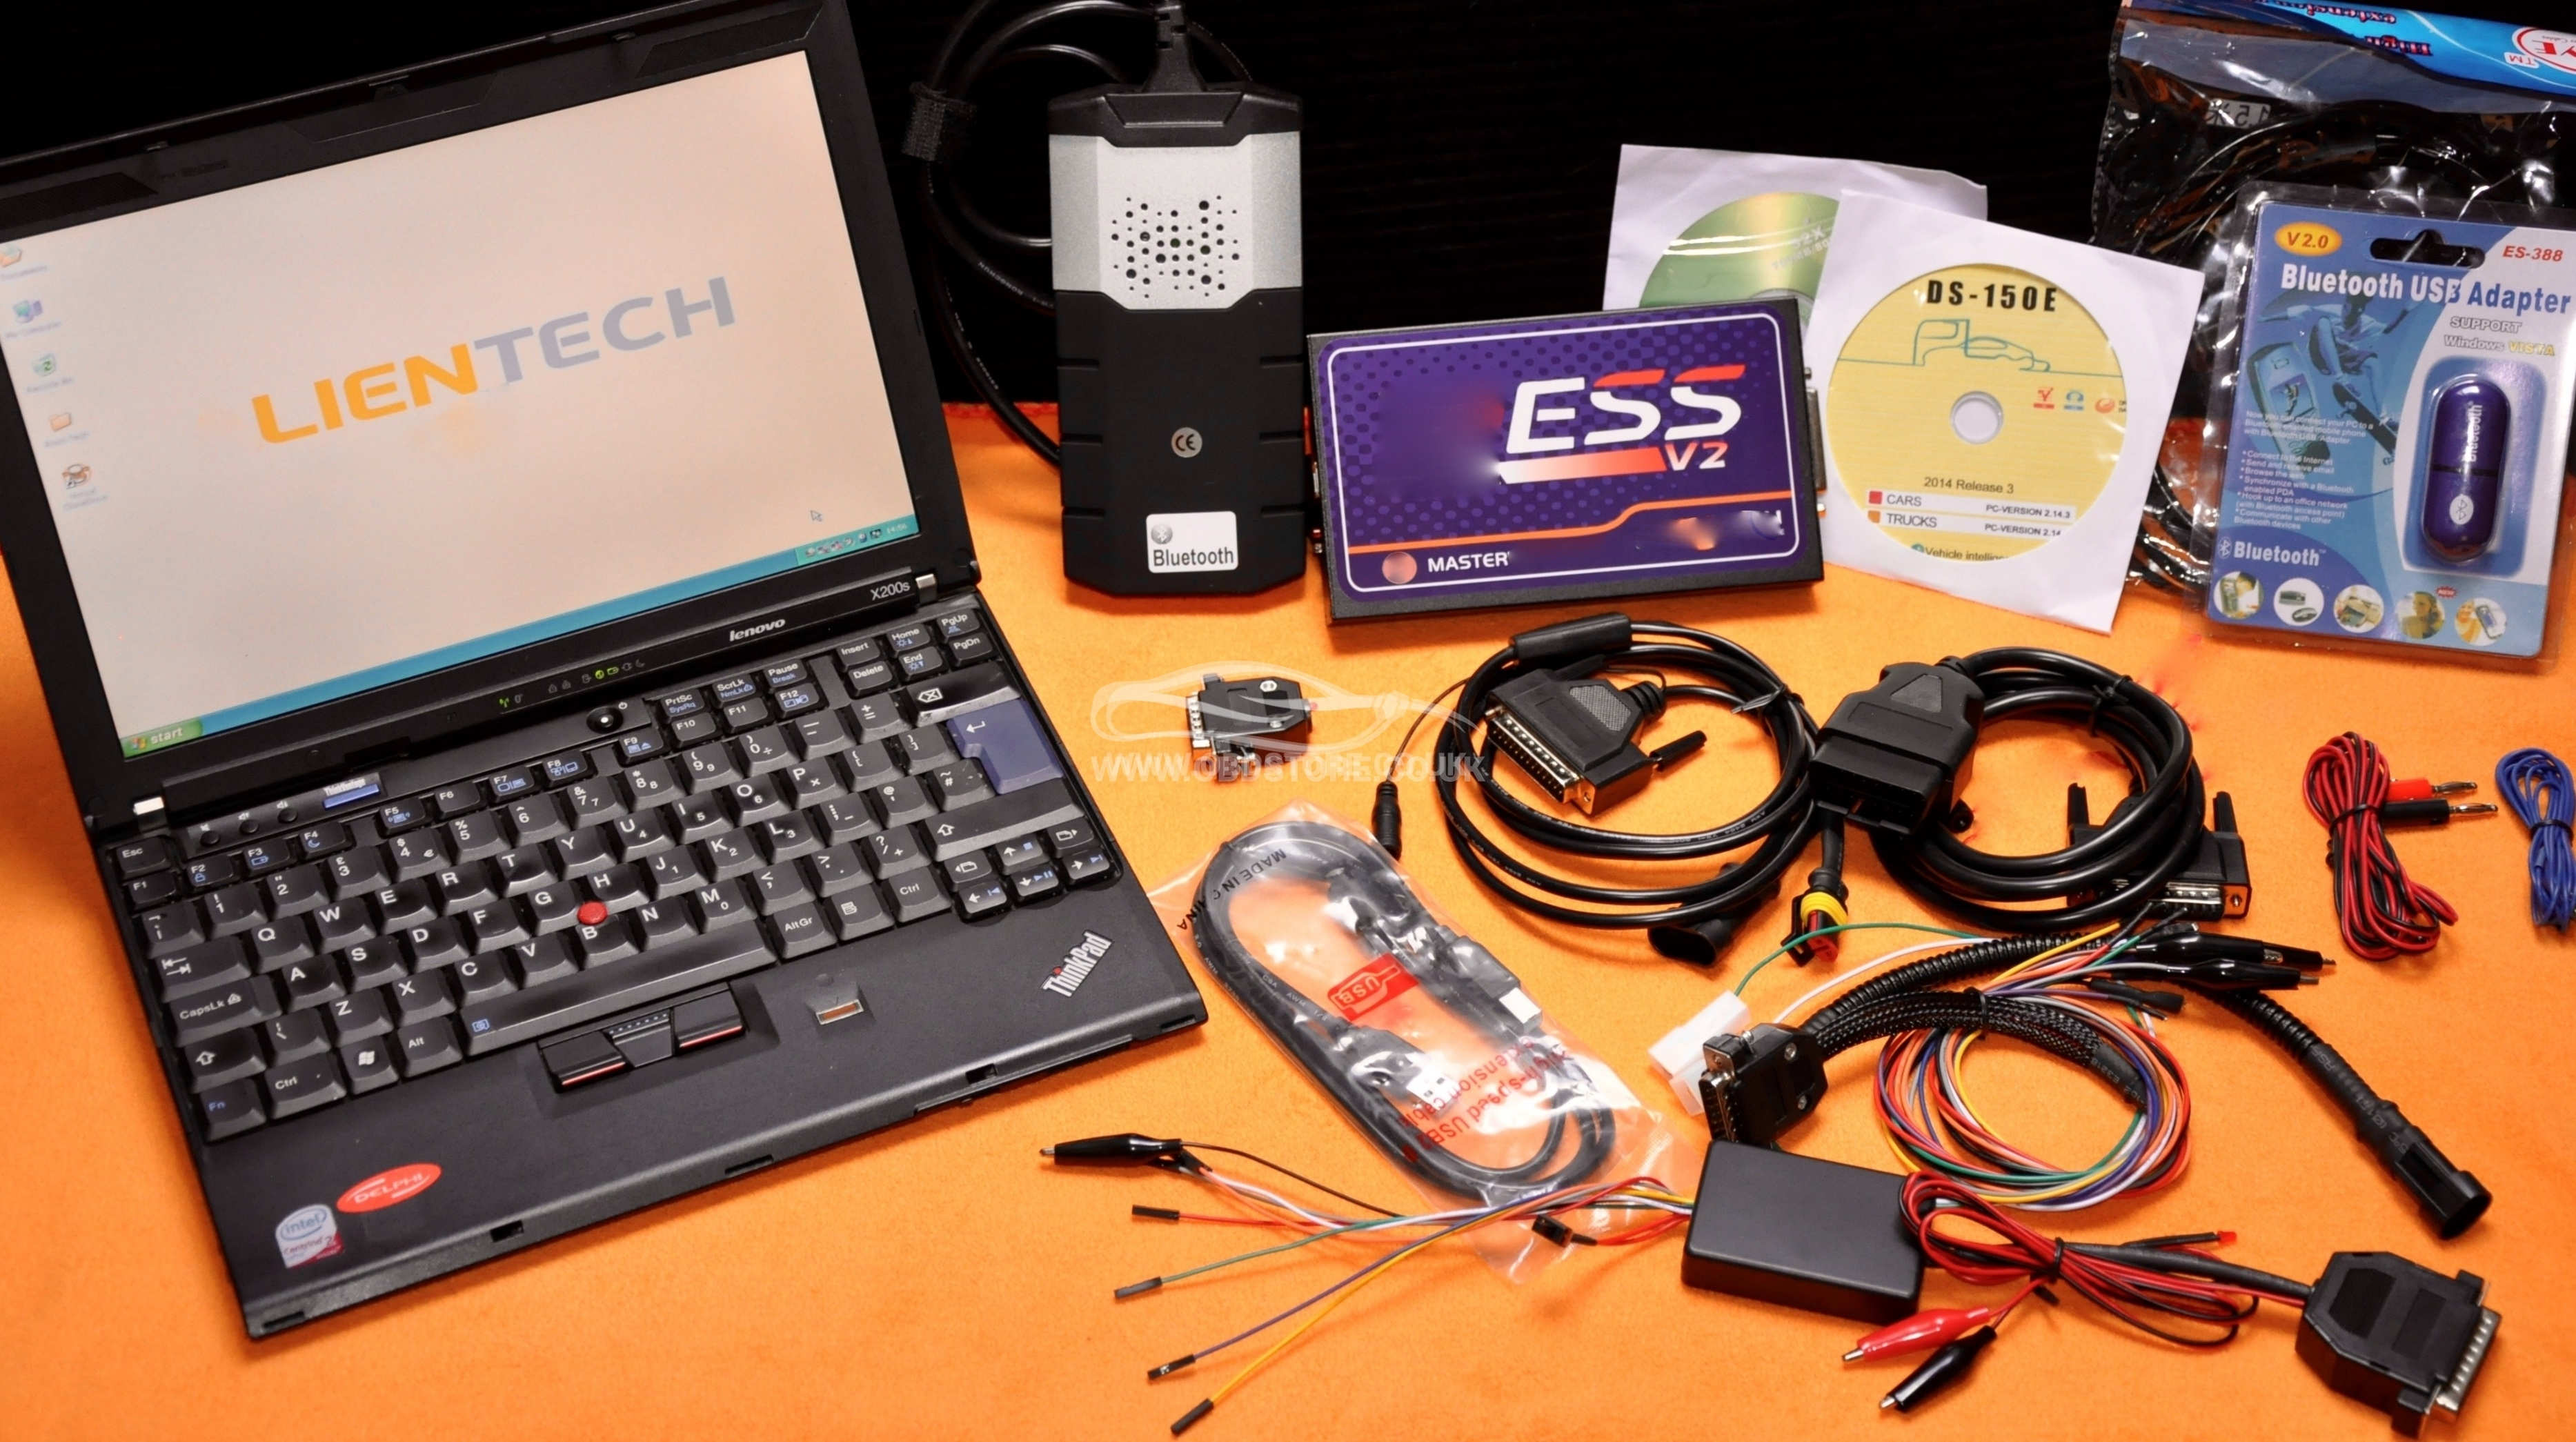 Auto Diagnostic & Remapping Laptop, Ess v2 Master and Multi Brand scanner  D-S150E